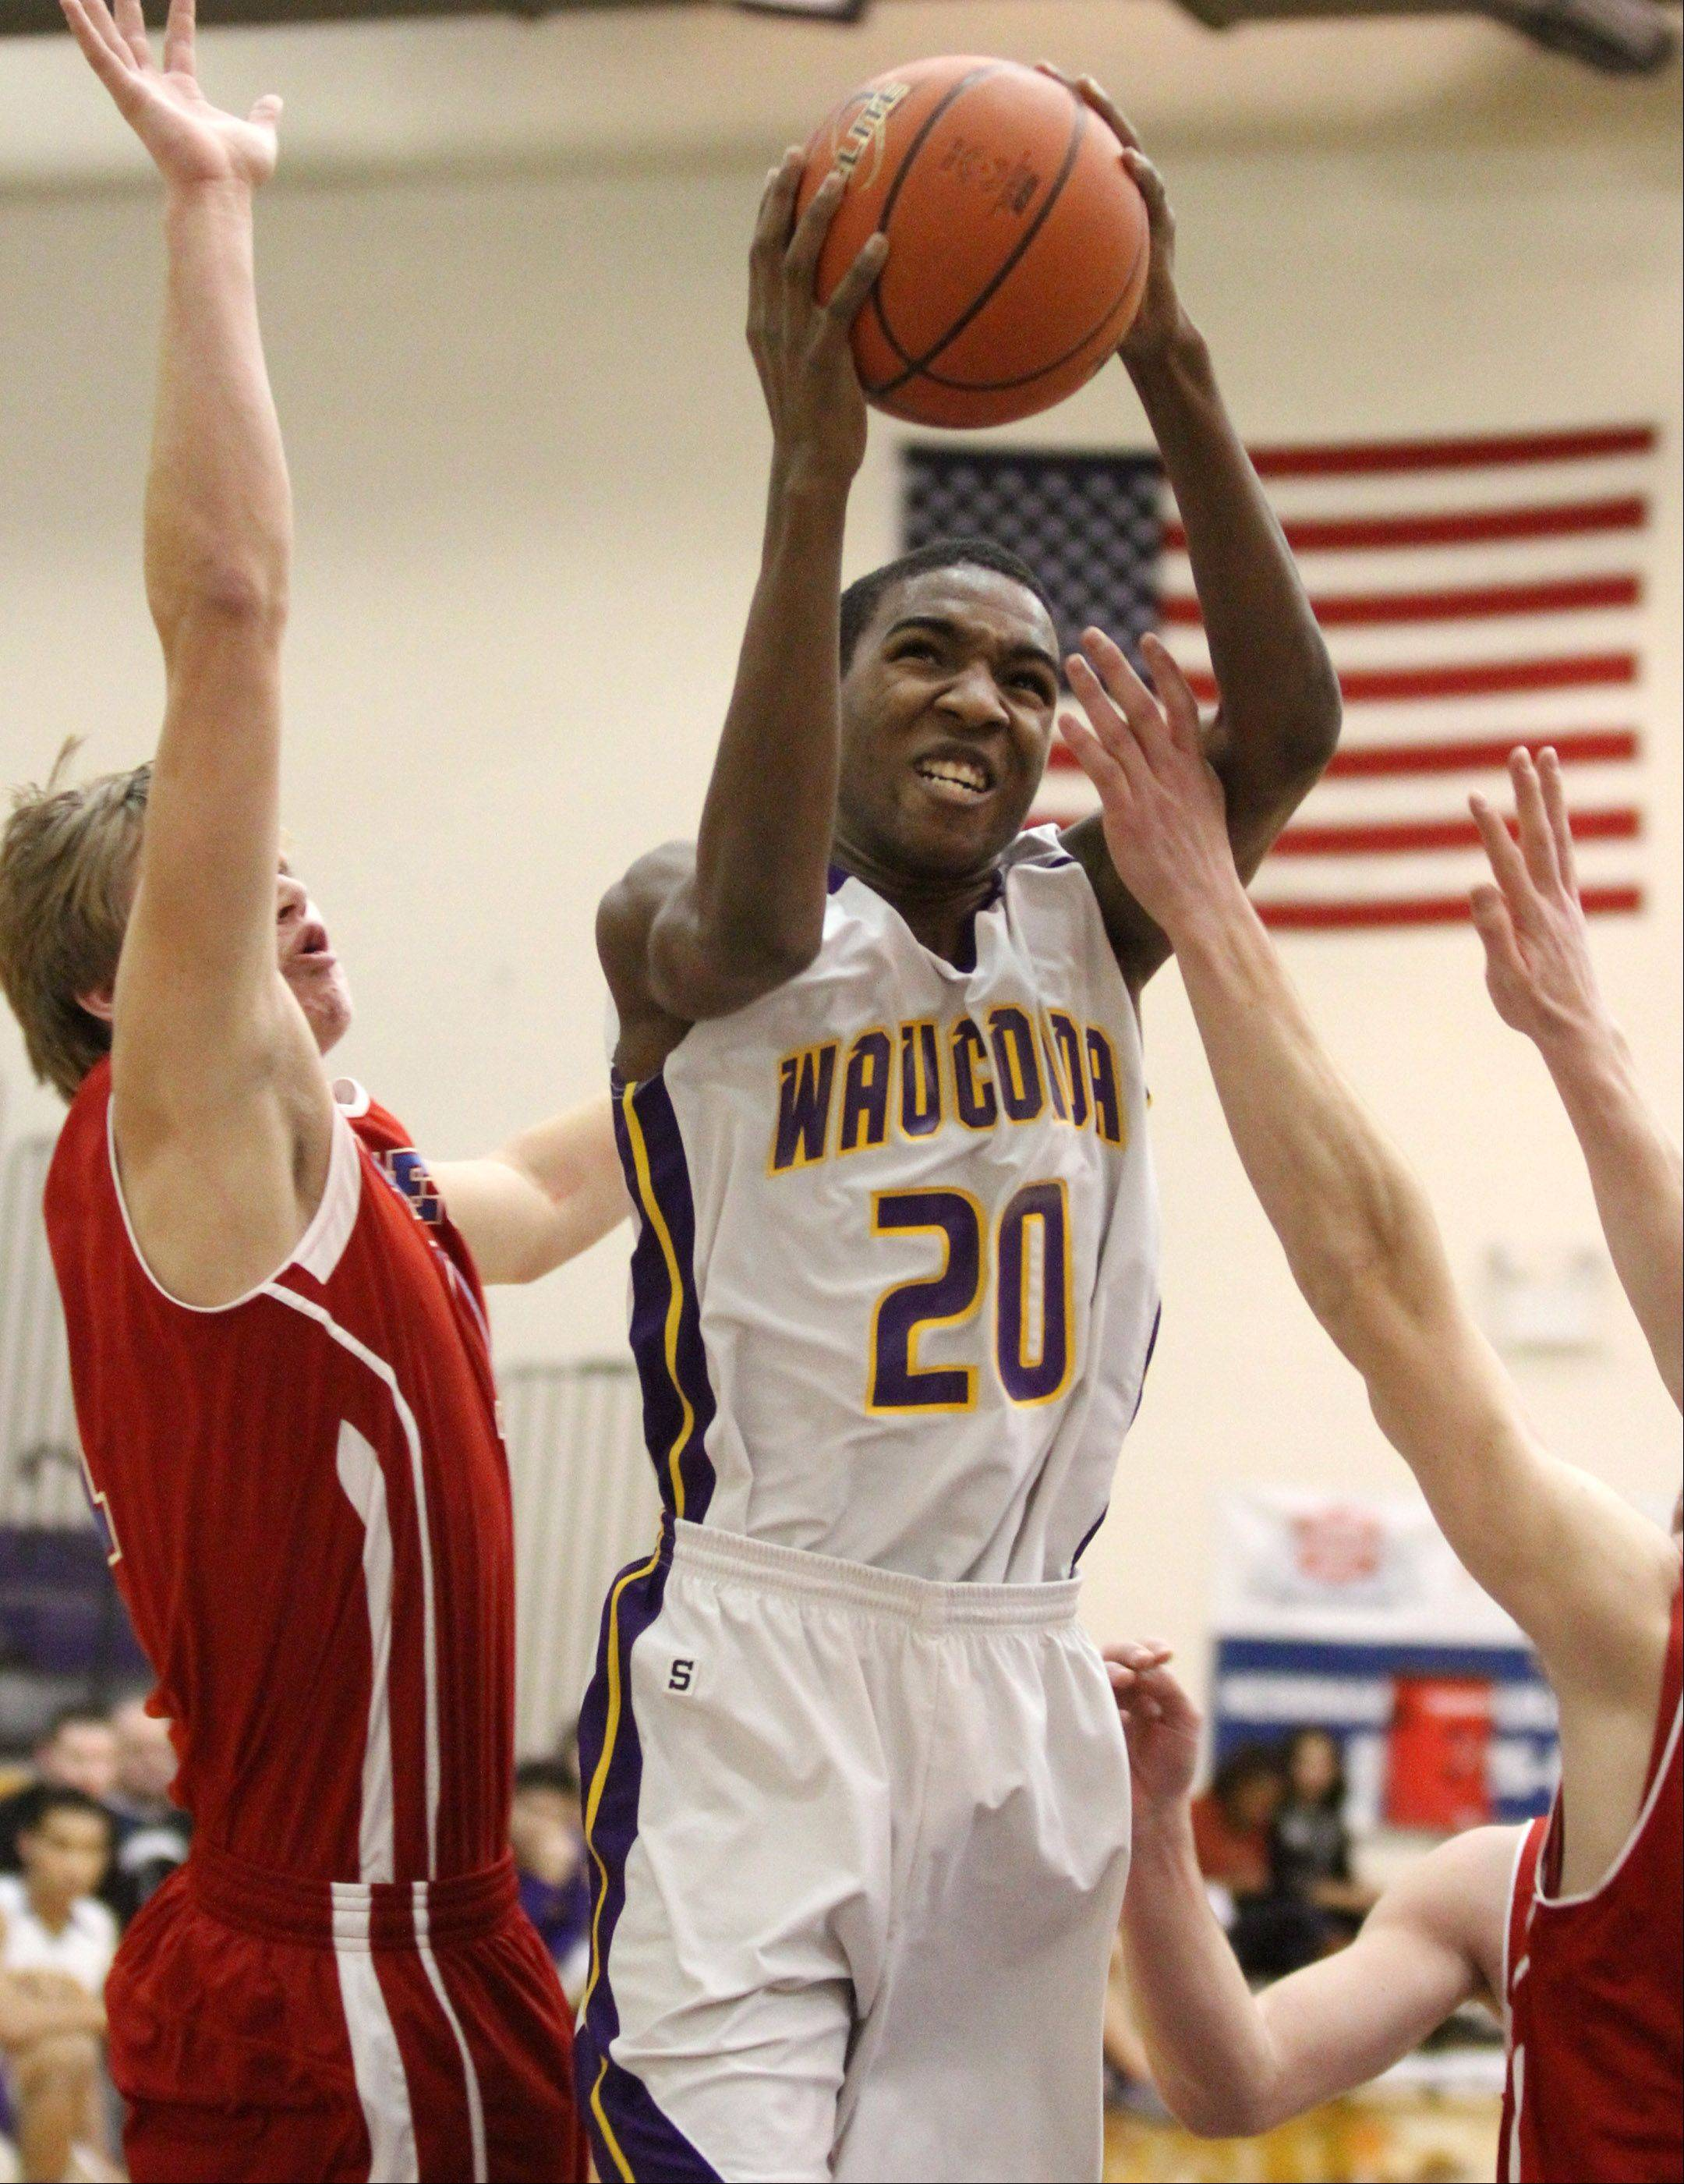 Wauconda's Devon Kings puts the ball up against a Lakes' defender at Wauconda on Friday.